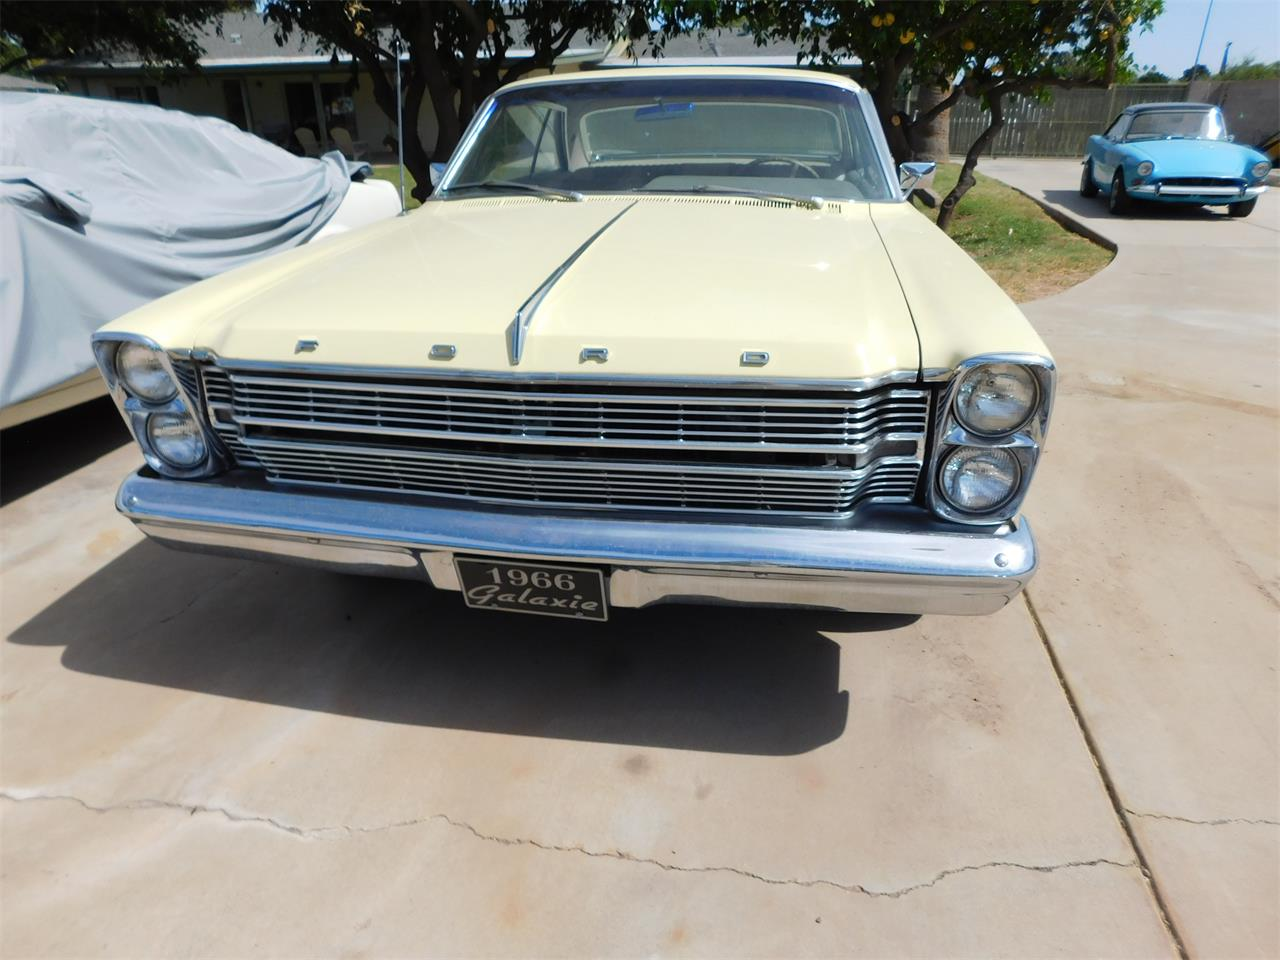 Large Picture of Classic 1966 Ford Galaxie 500 located in Arizona - $23,000.00 Offered by Classic Car Pal - QCC5